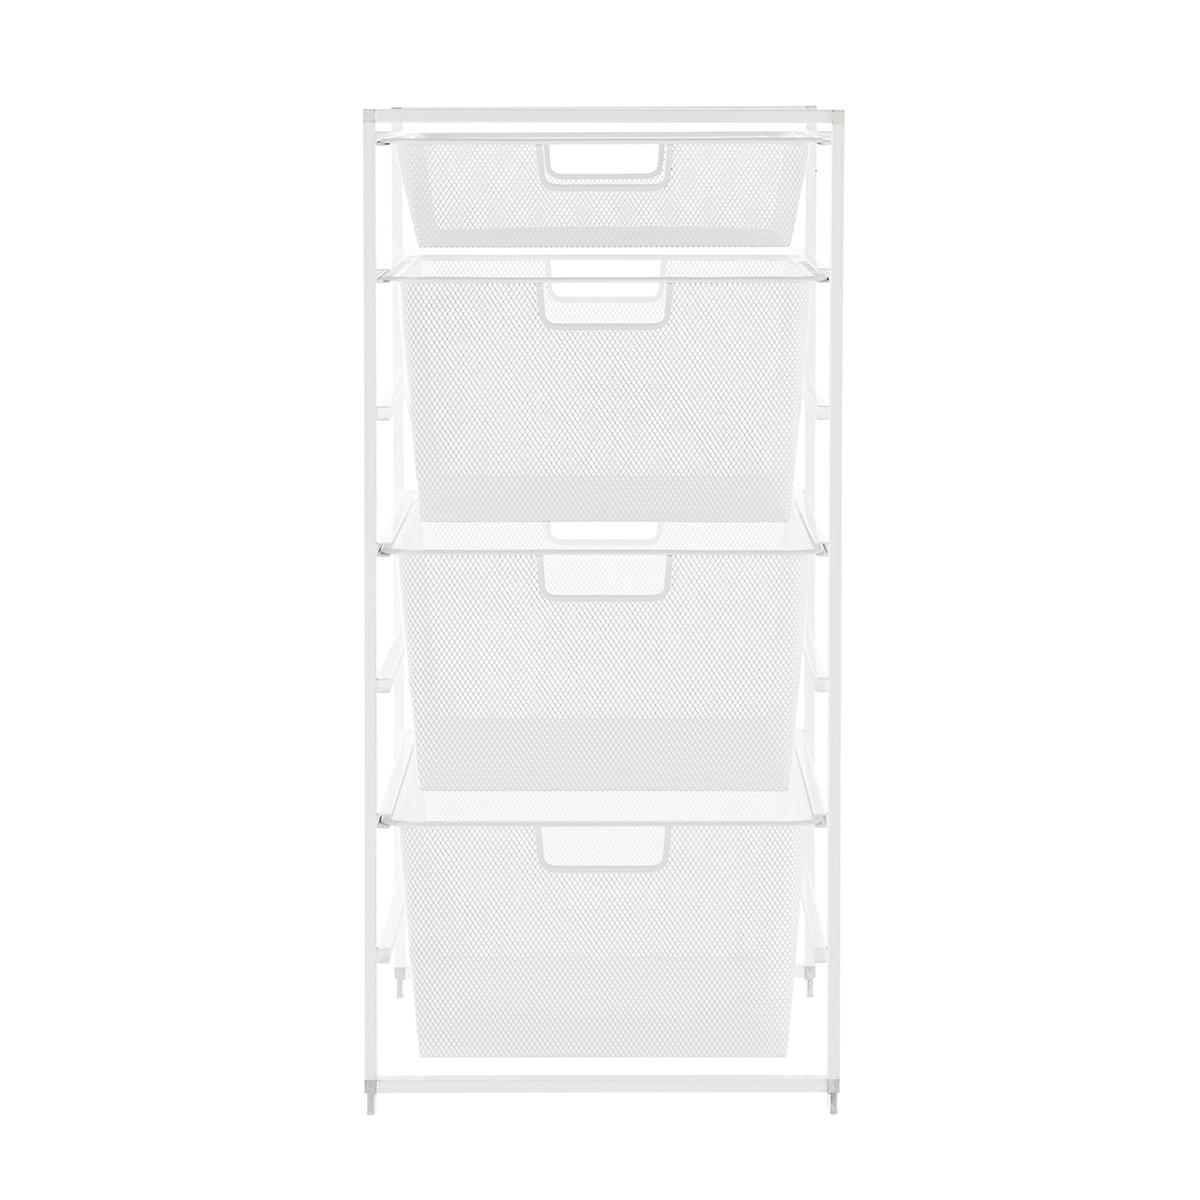 White Elfa Drawer Frames | The Container Store